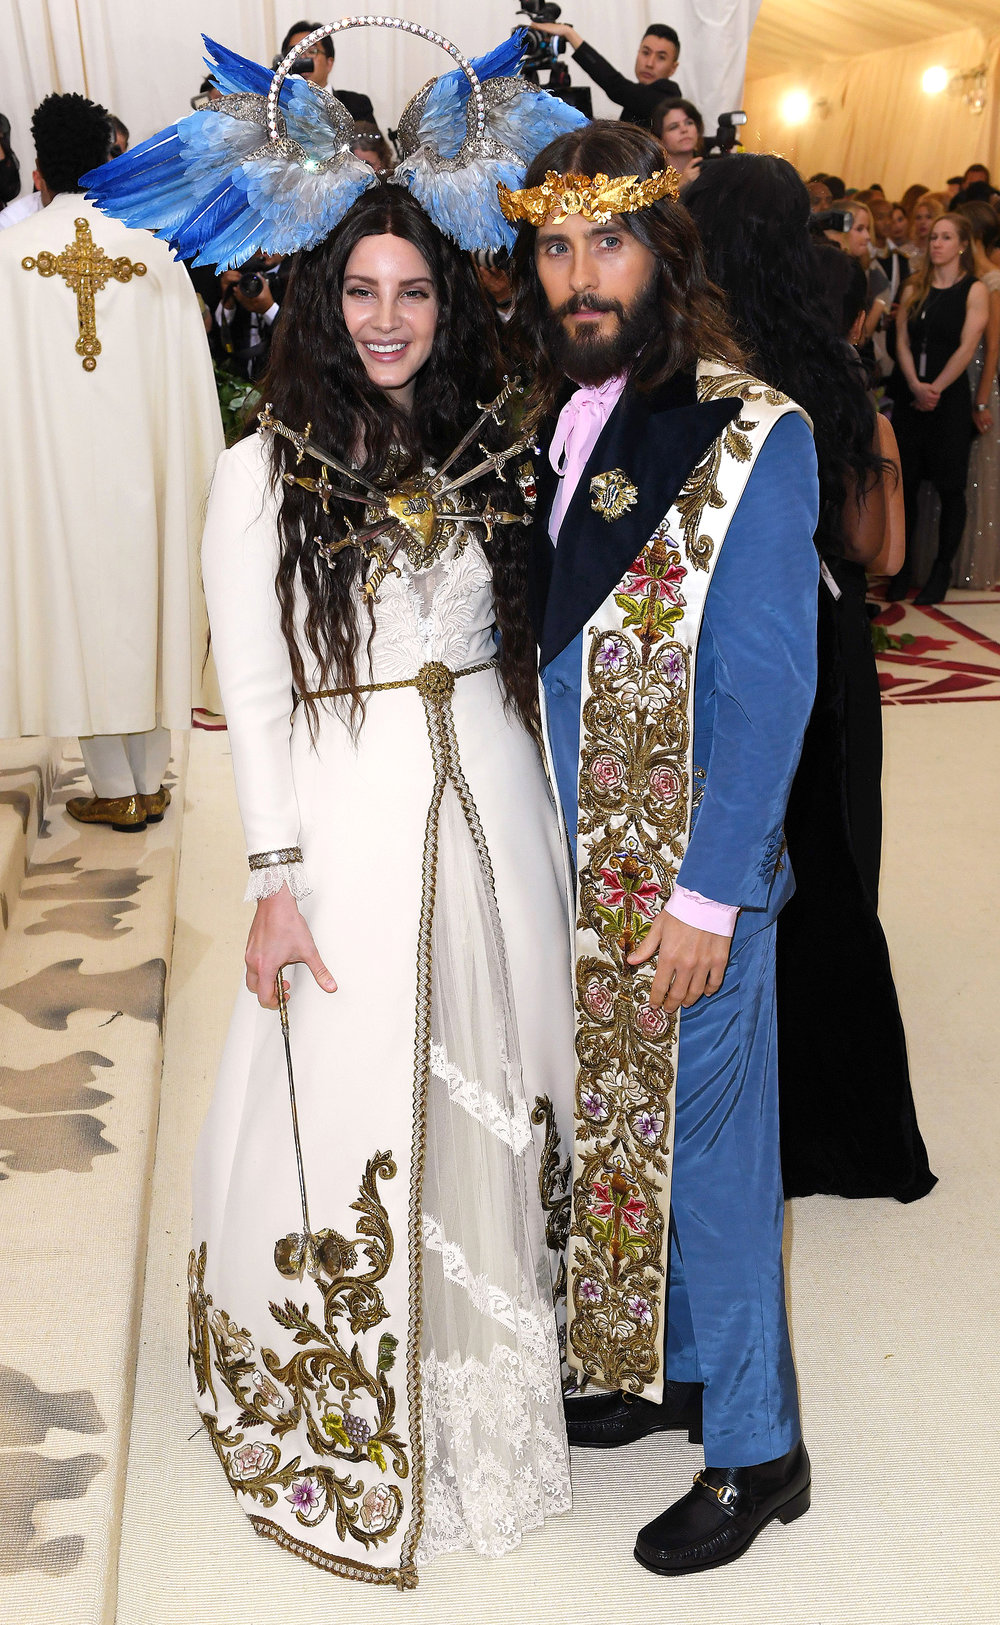 60. LANA DEL REY AND JARED LETO